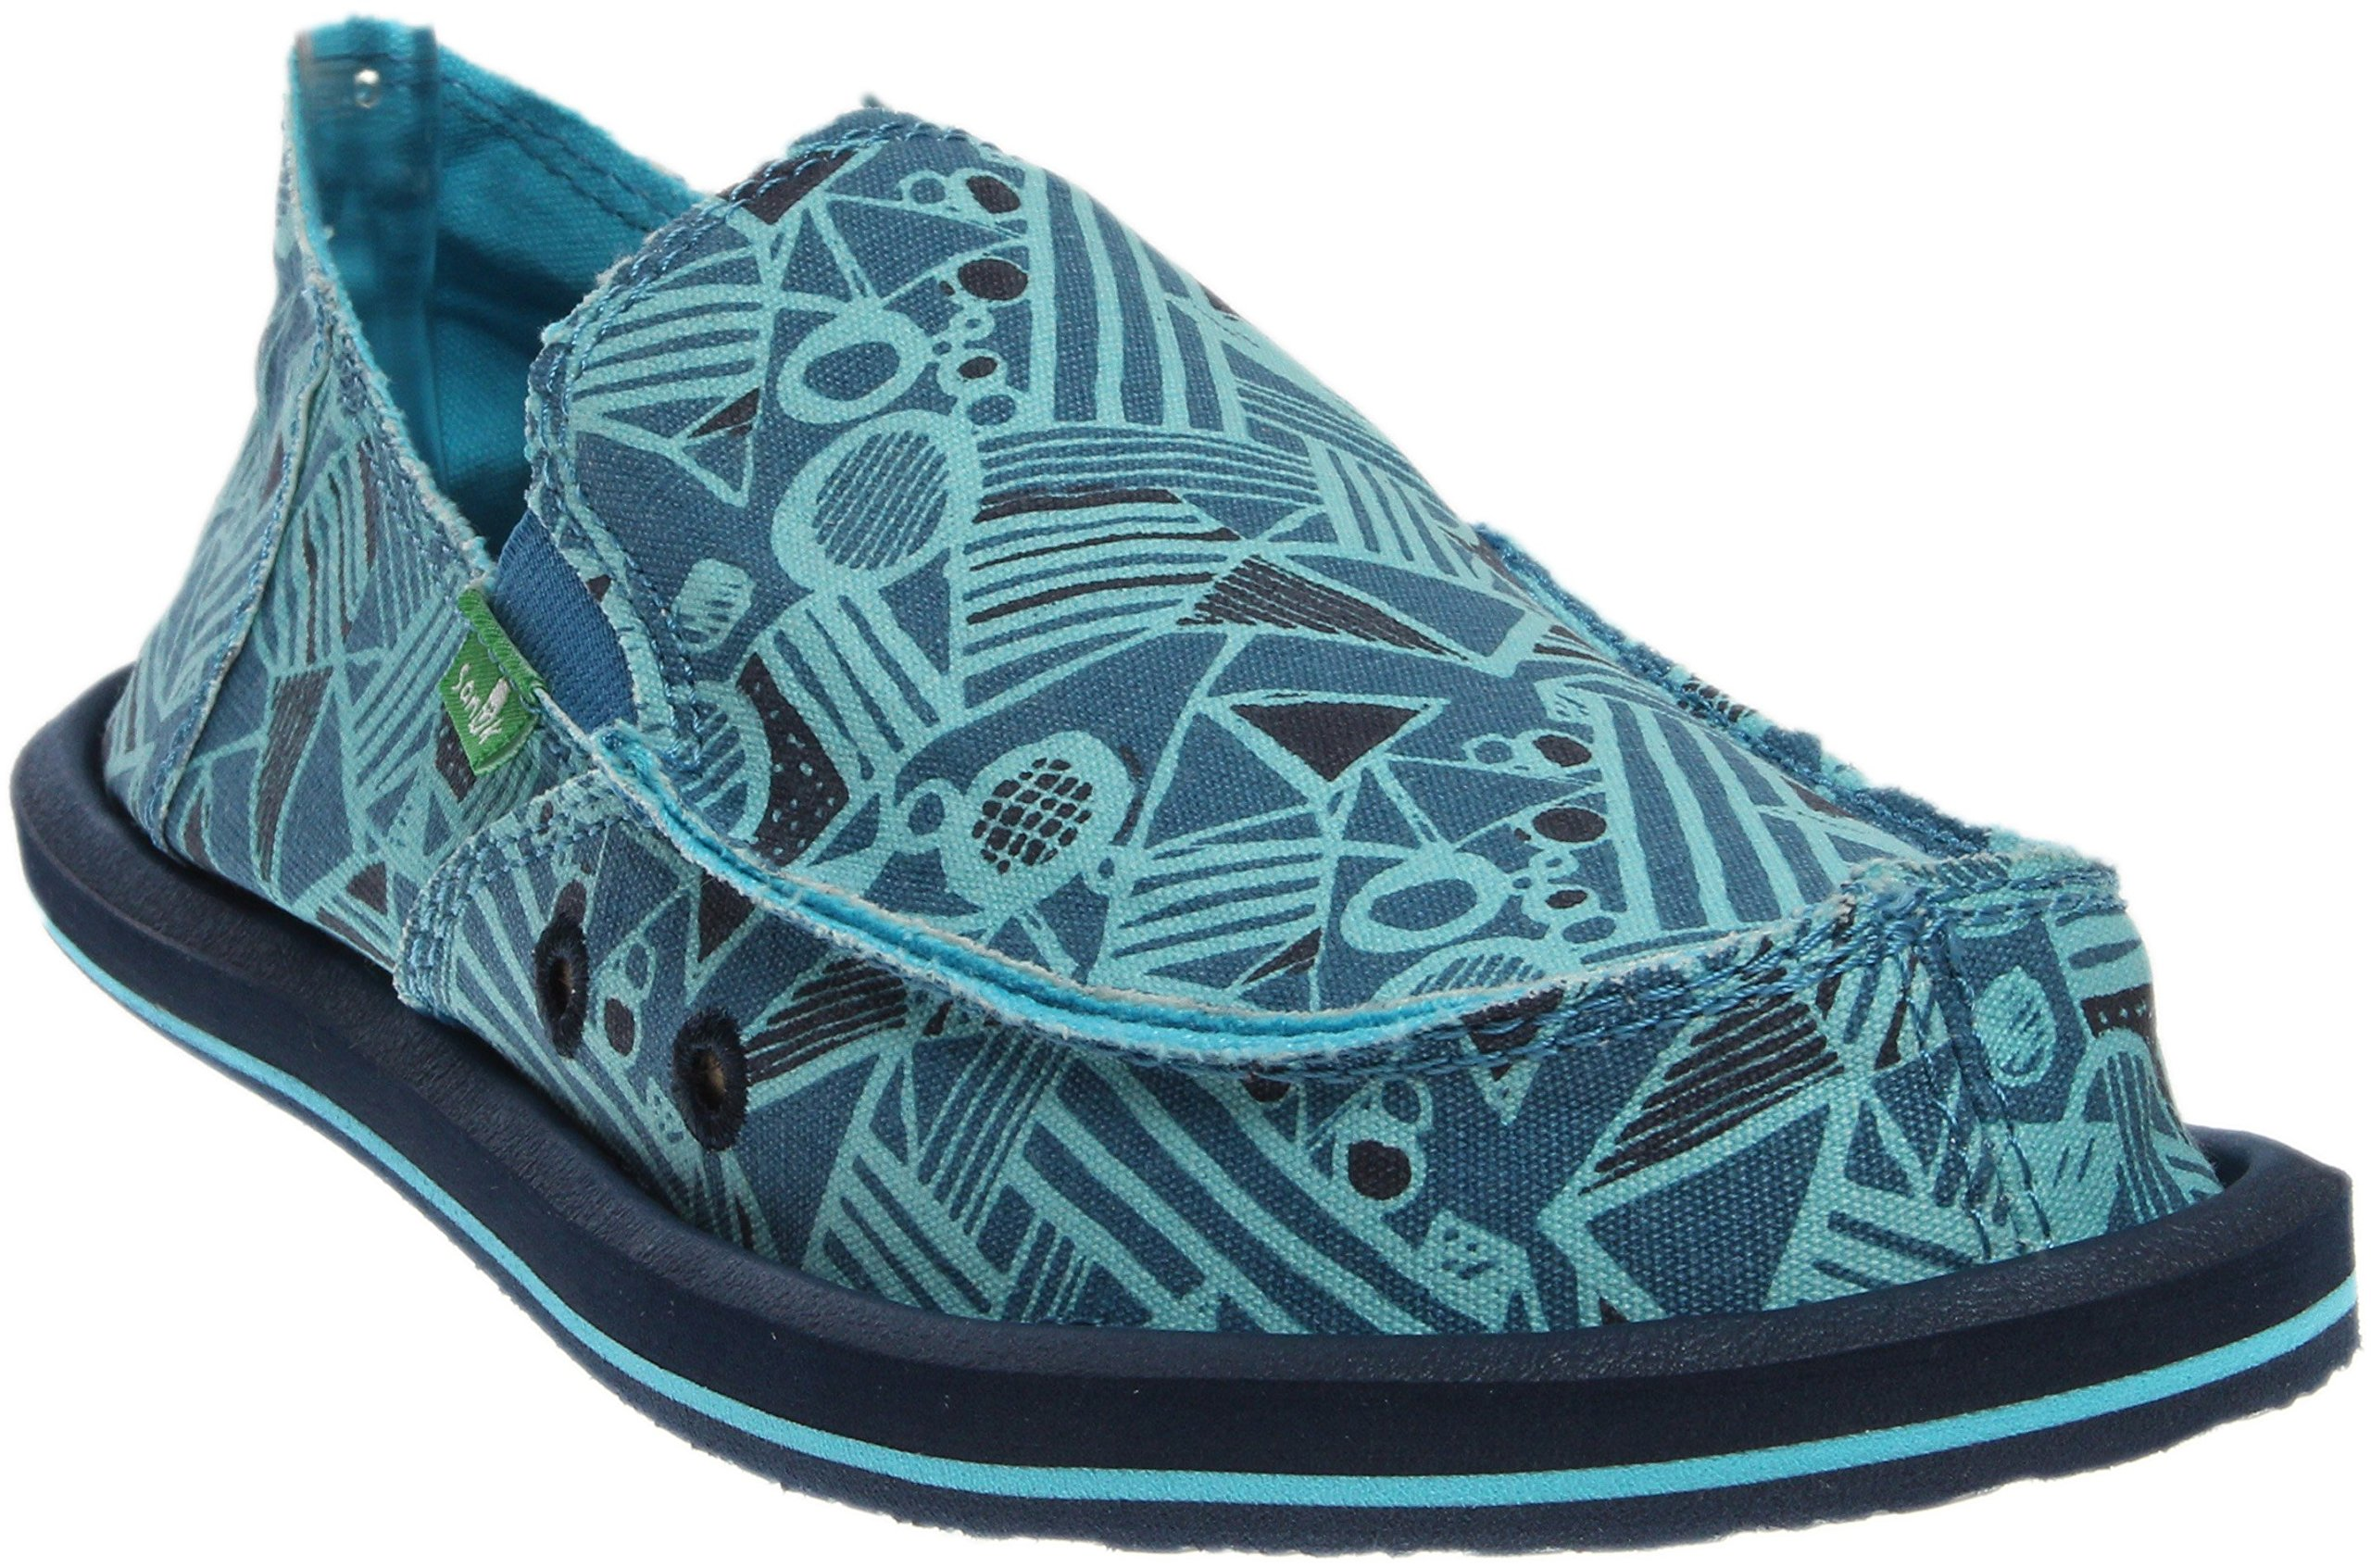 Sanuk Kids Boys' Lil Donny Funk Slip On (Toddler/Little Kid/Big Kid), Blue Crazy Shapes, 4 M US Big Kid